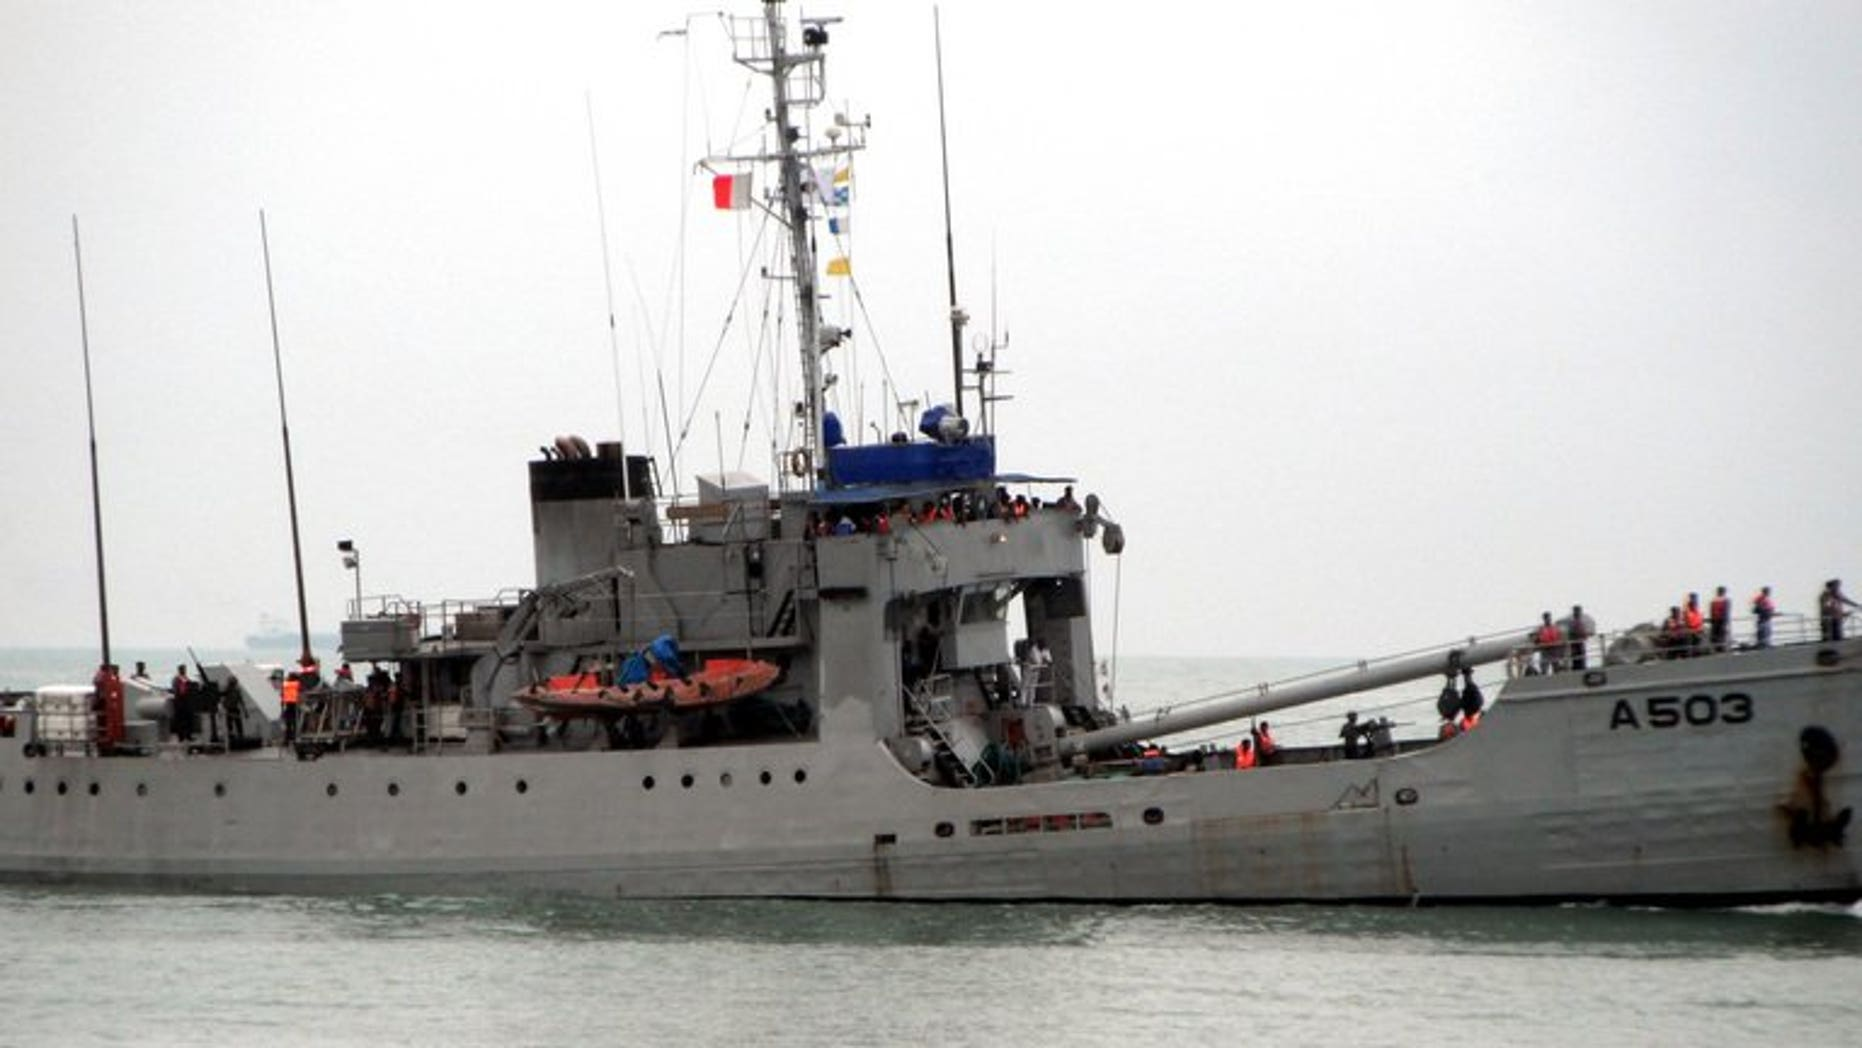 A ship of the Nigerian navy, taking part in a counter-piracy patrol on September 28, 2011. Wast Africa has overtaken Somalia as the world's piracy hot-spot with 966 sailors attacked last year, a report by the International Maritime Bureau (IMB) said on Tuesday.